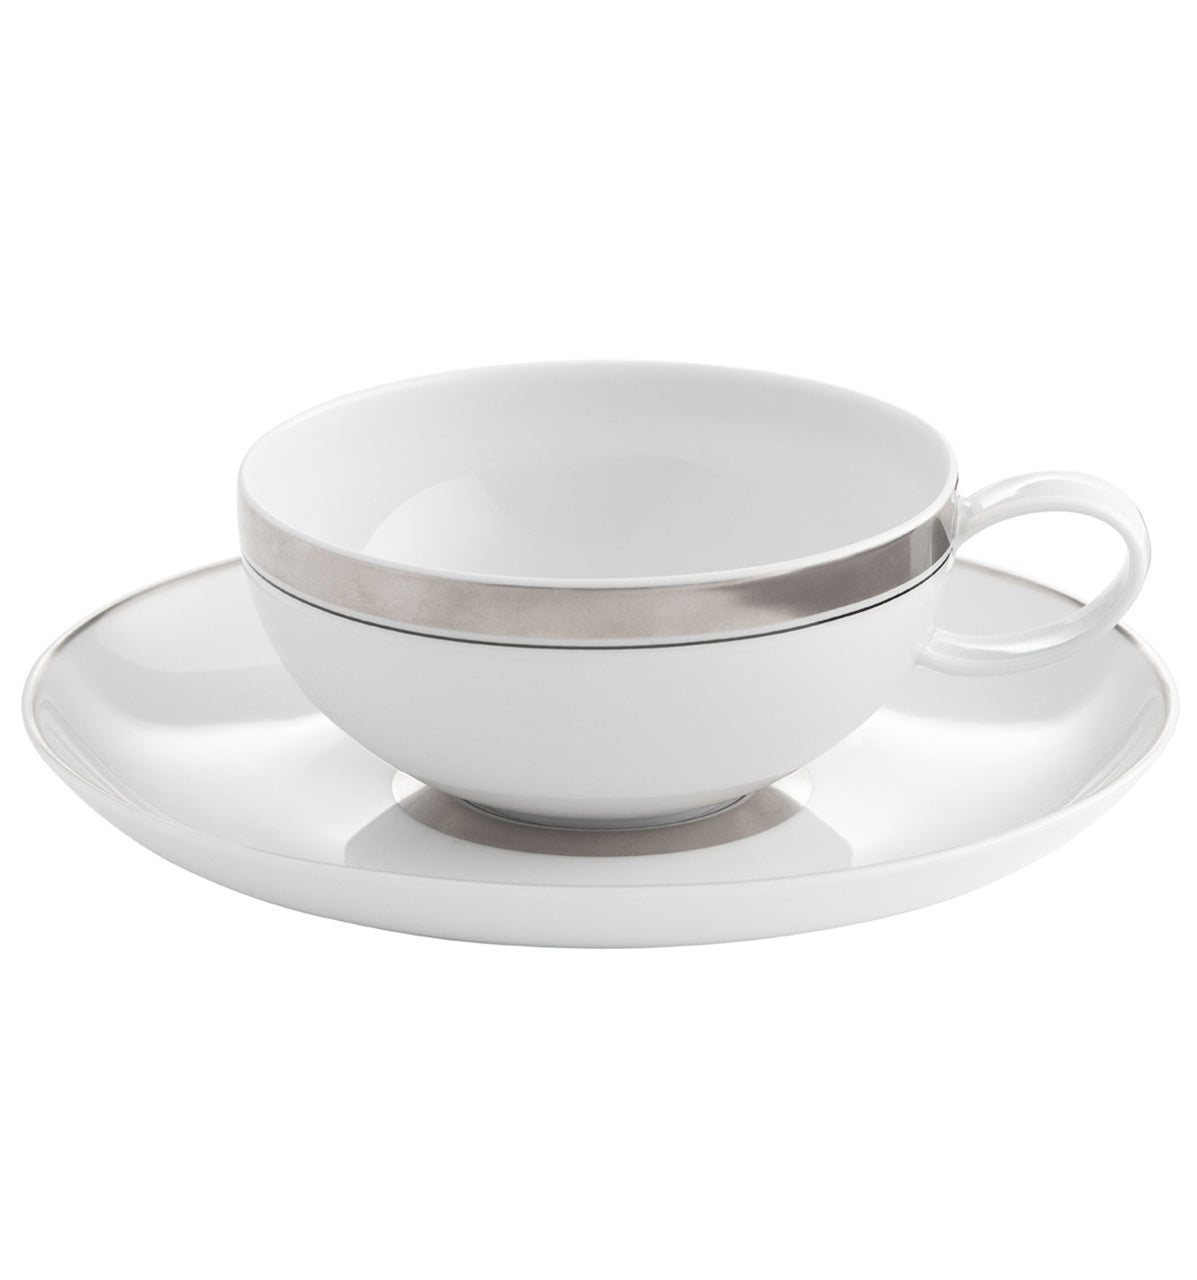 Domo Platinium Breakfast Cup & Saucer Set of 4